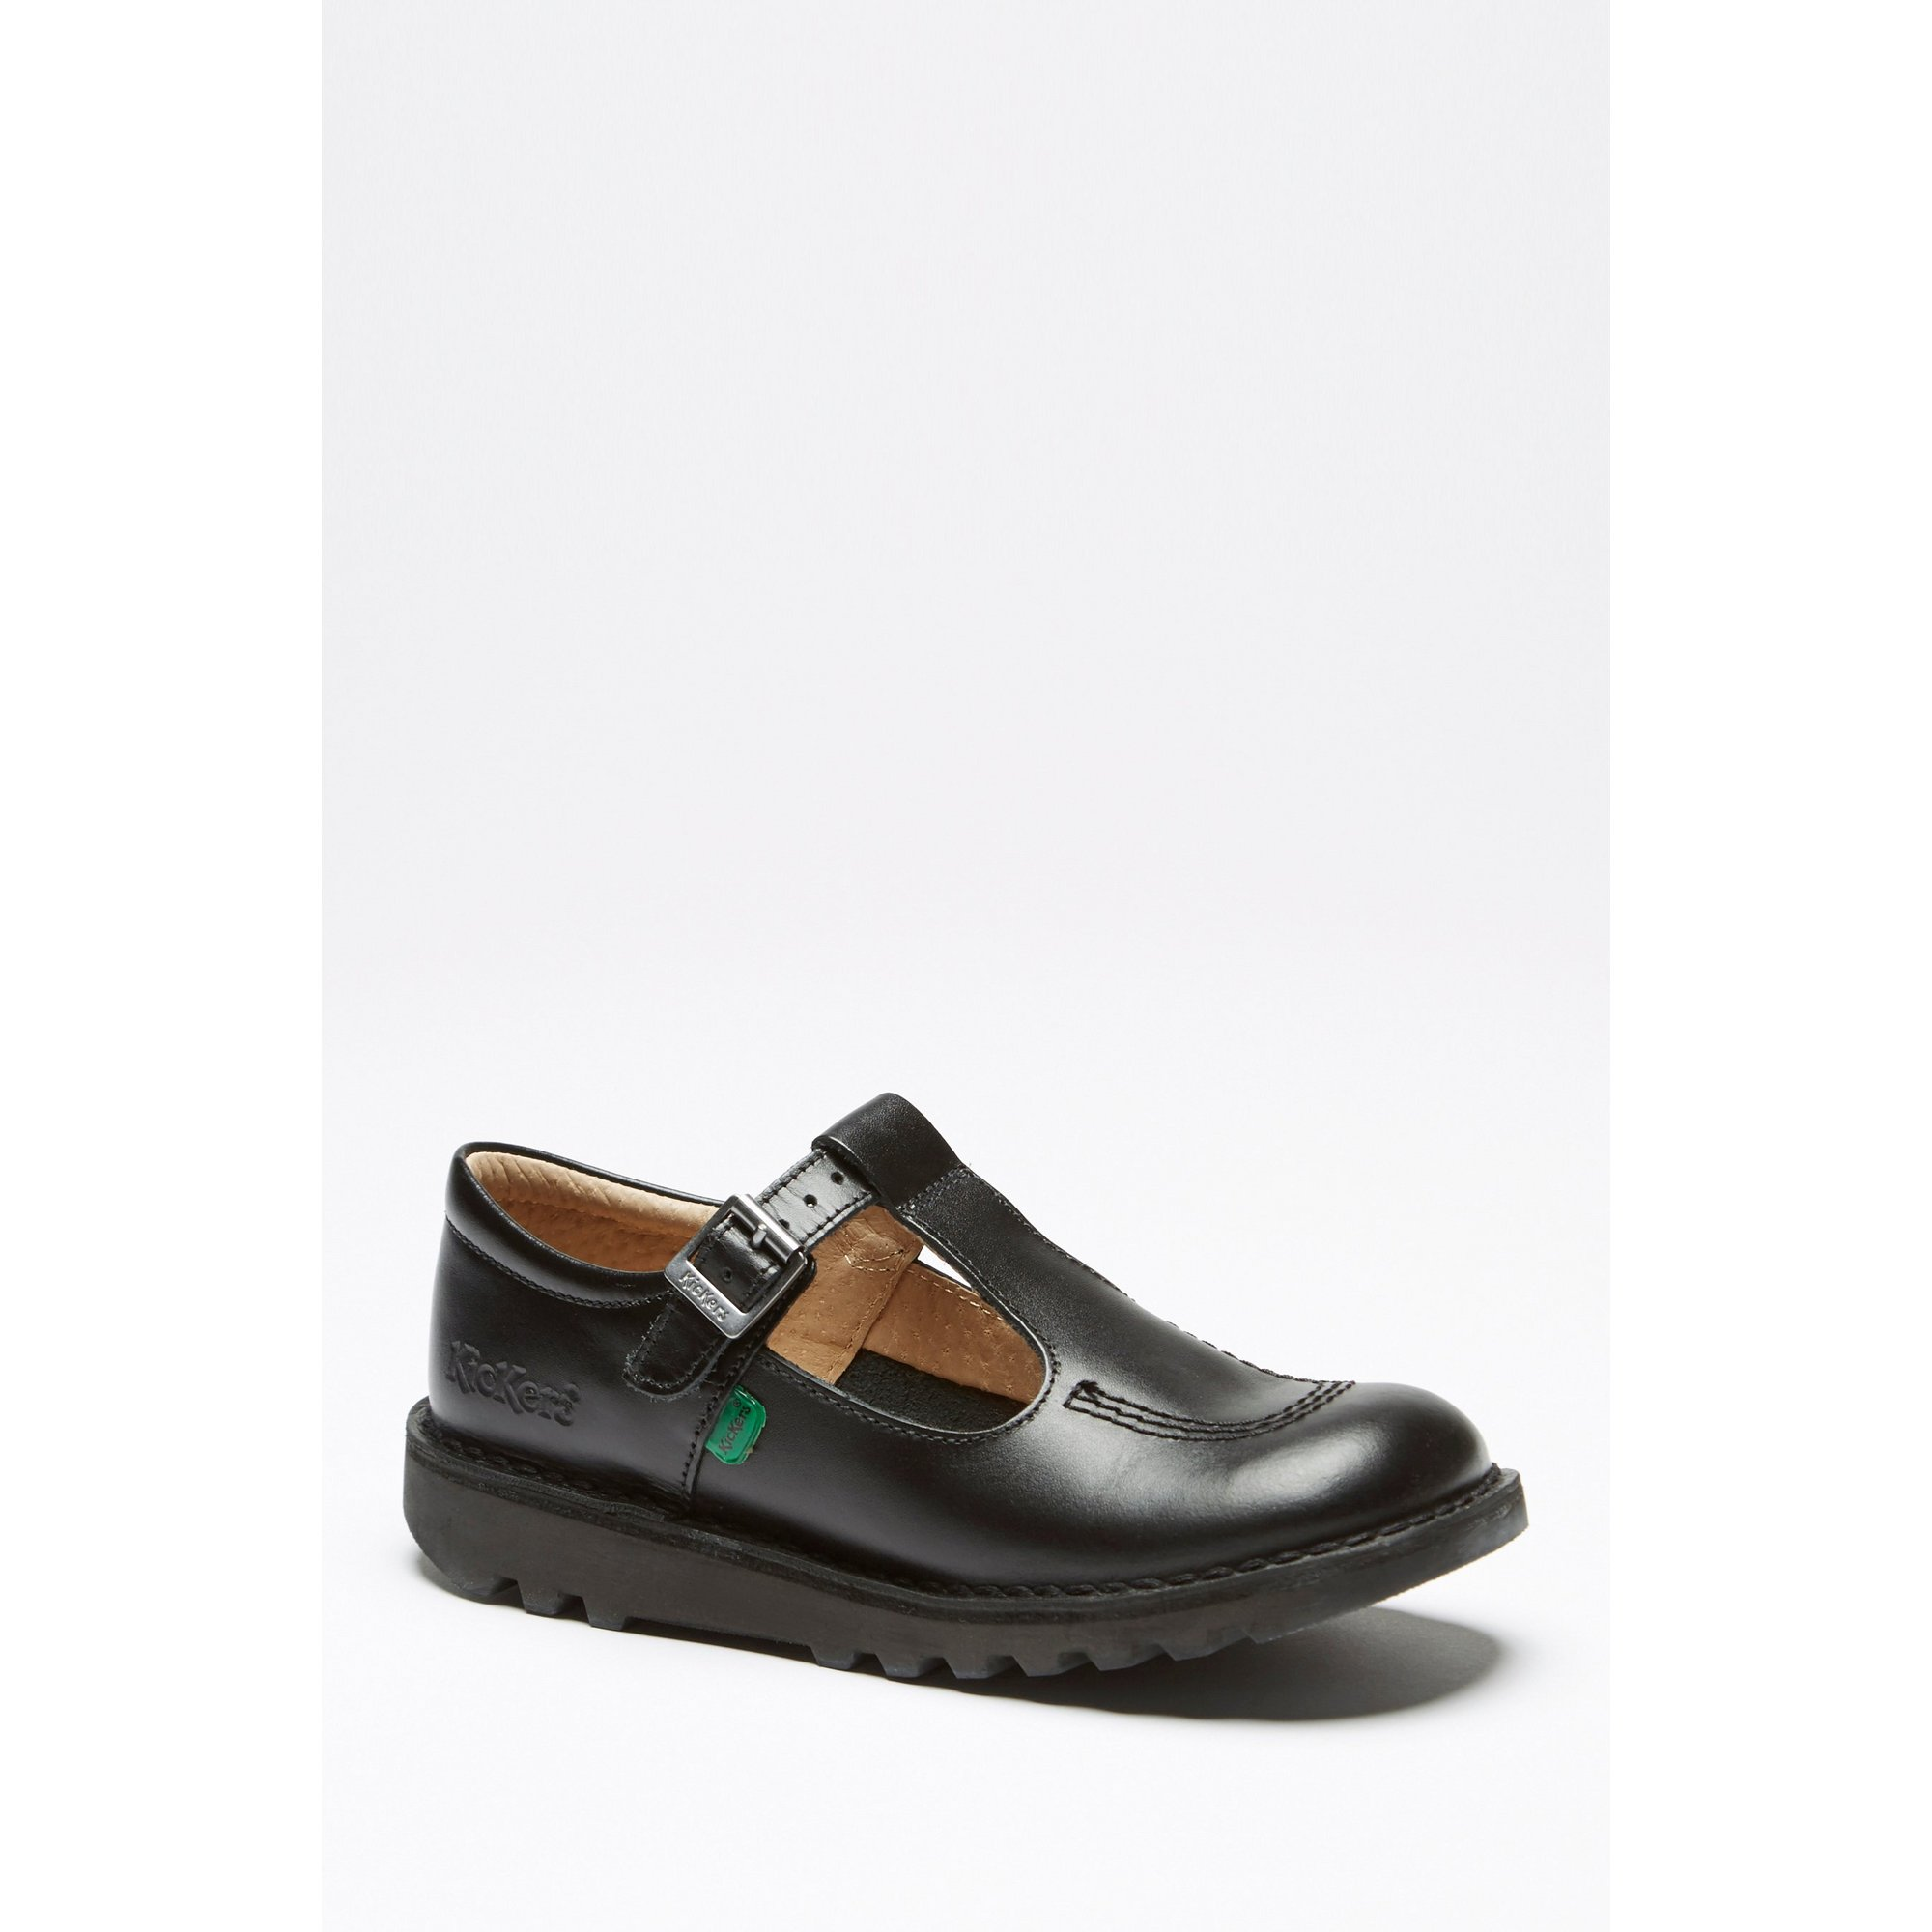 Image of Girls Kickers T-Bar Black Shoes